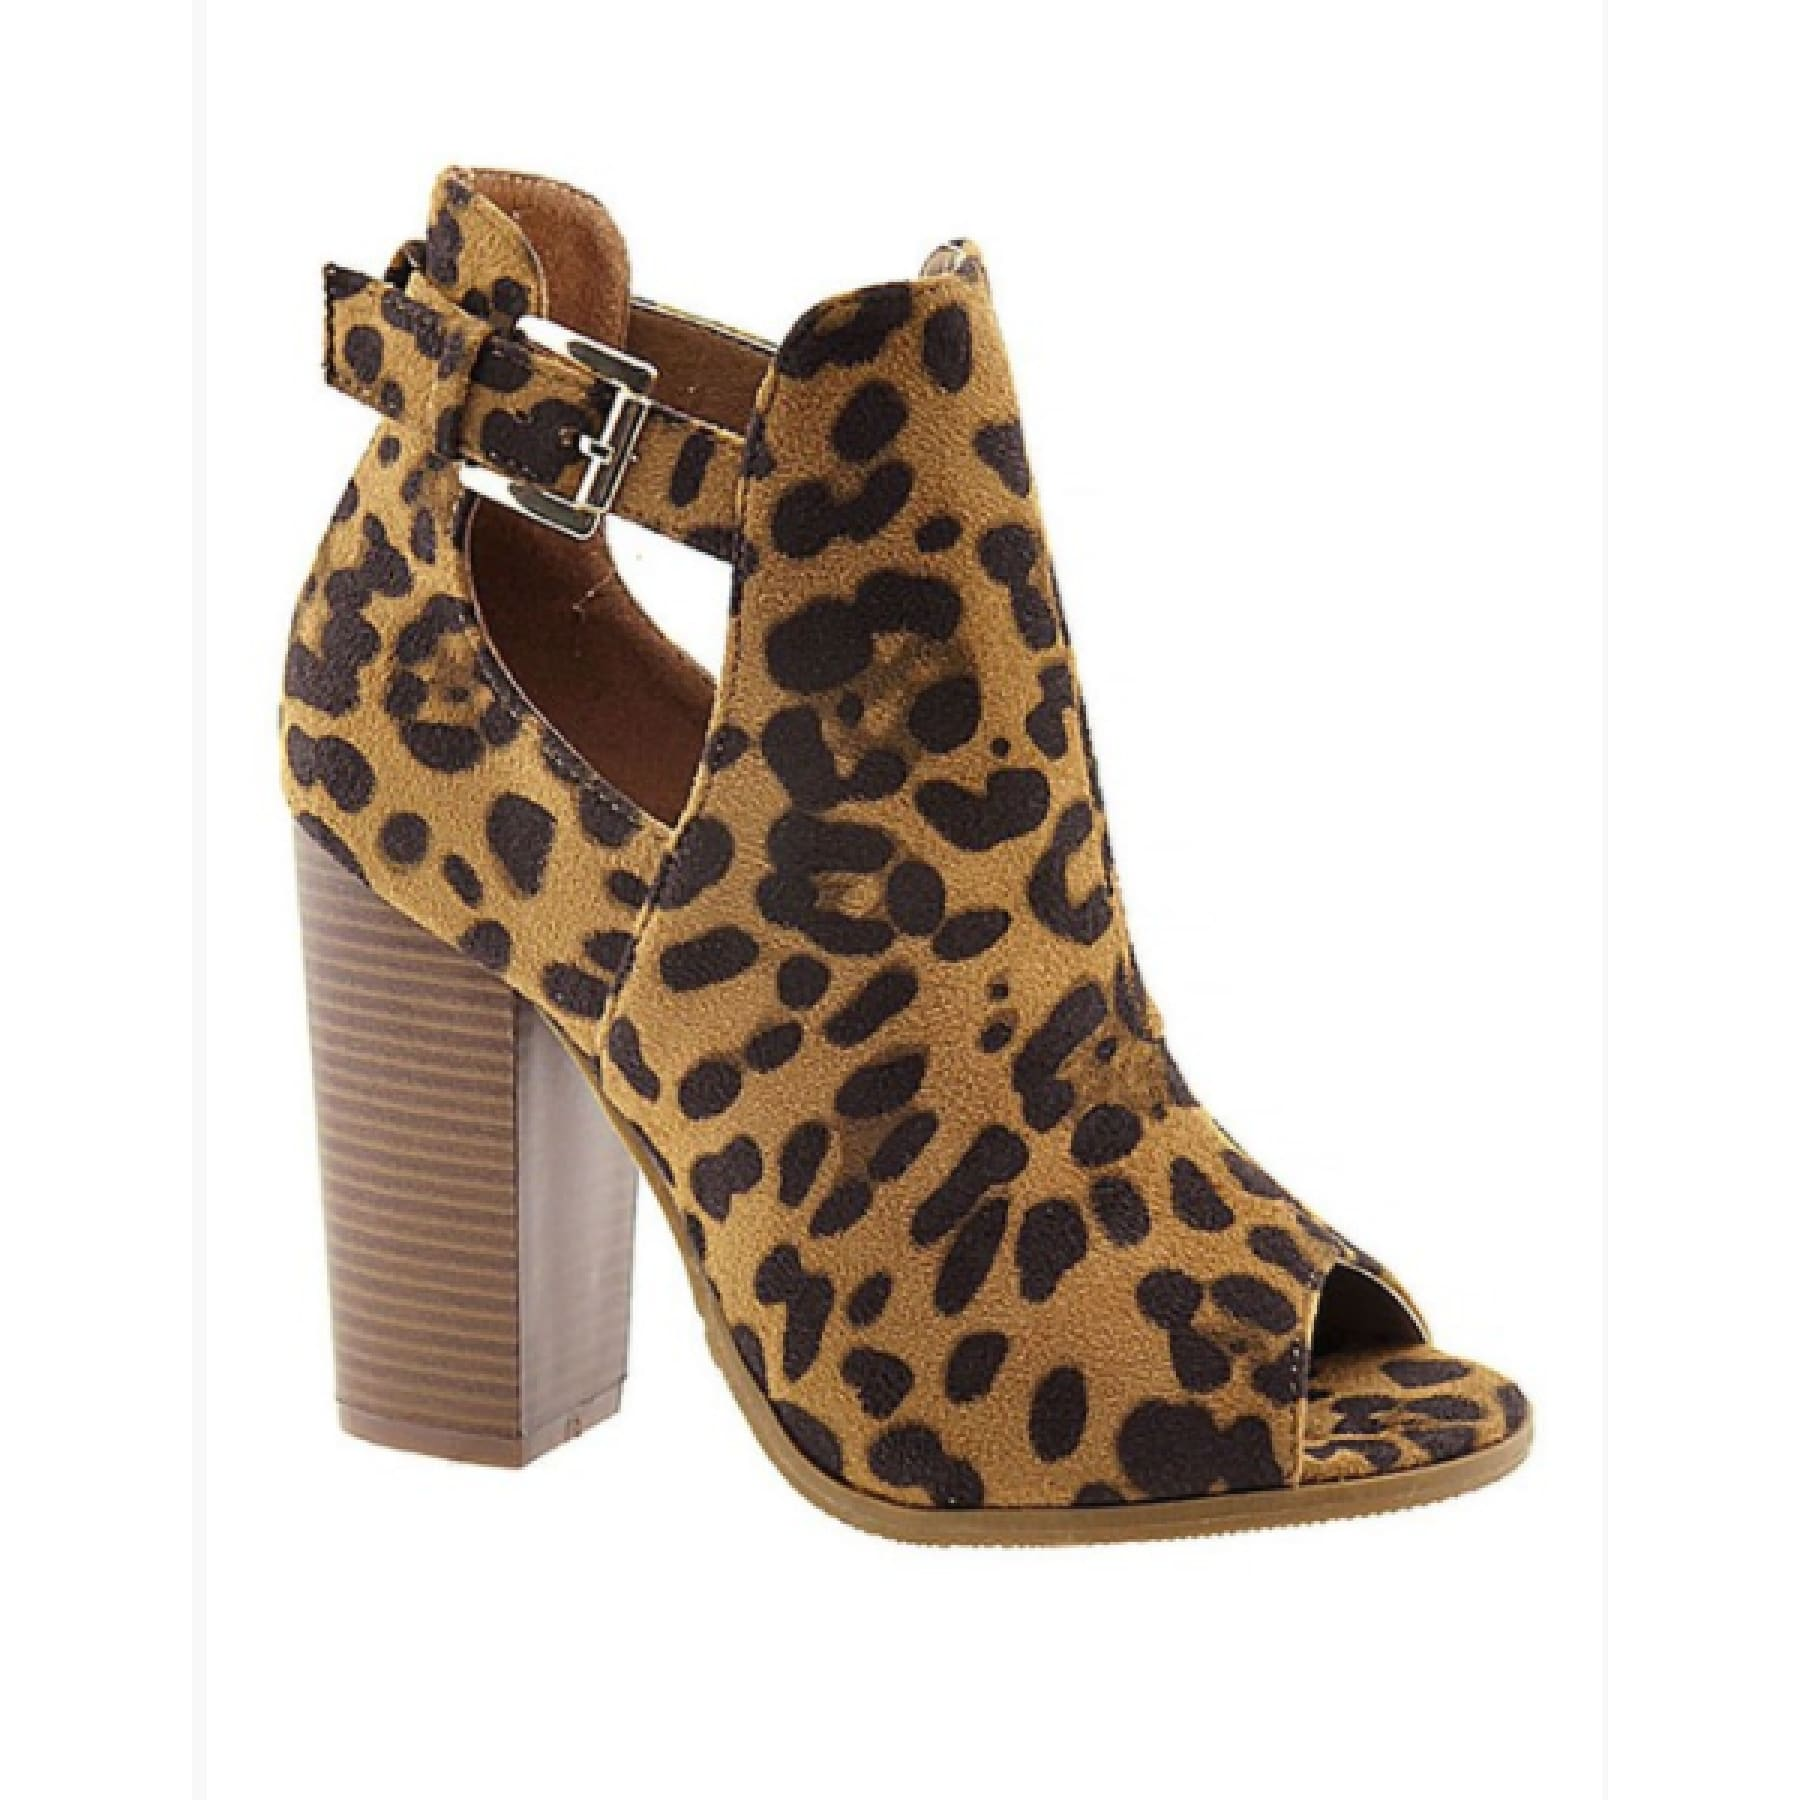 Leopard Peep Toe Booties,Booties - Dirt Road Divas Boutique